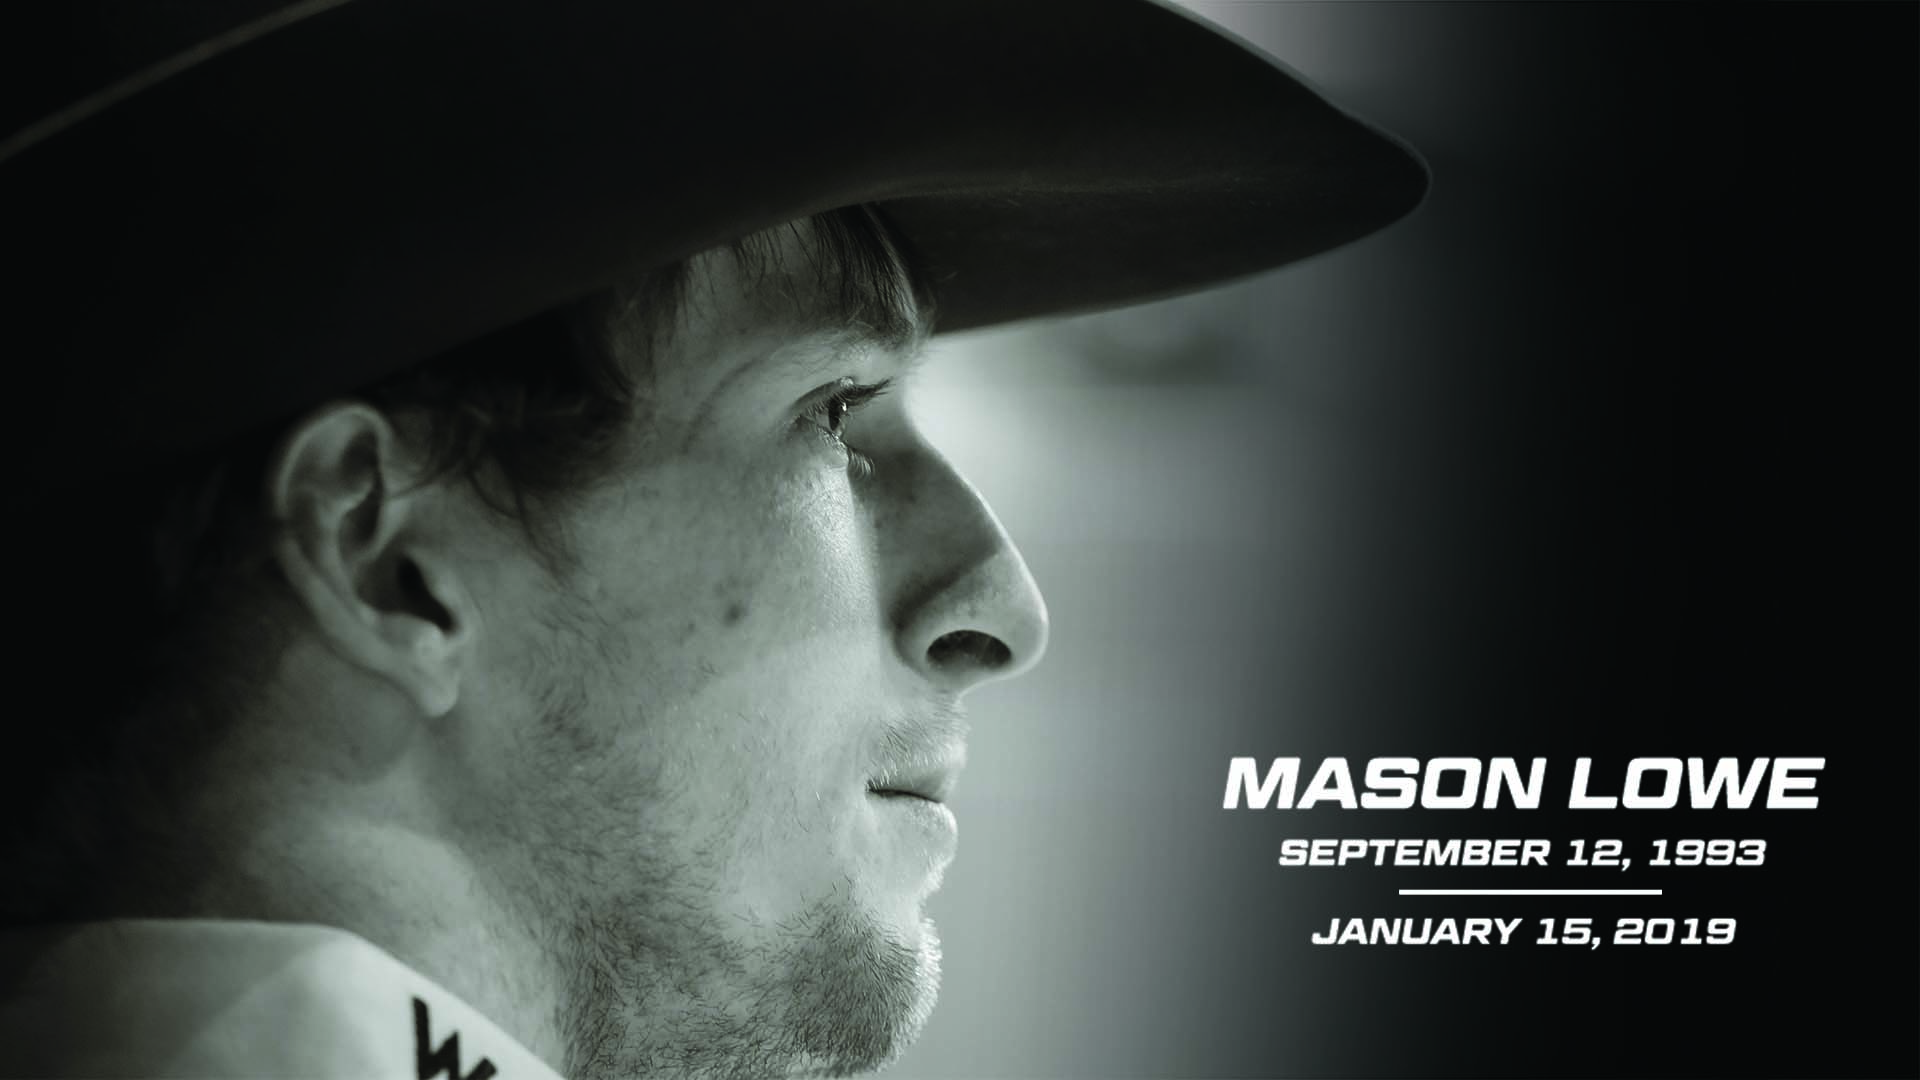 The PBR community reflects on the memory of Mason Lowe